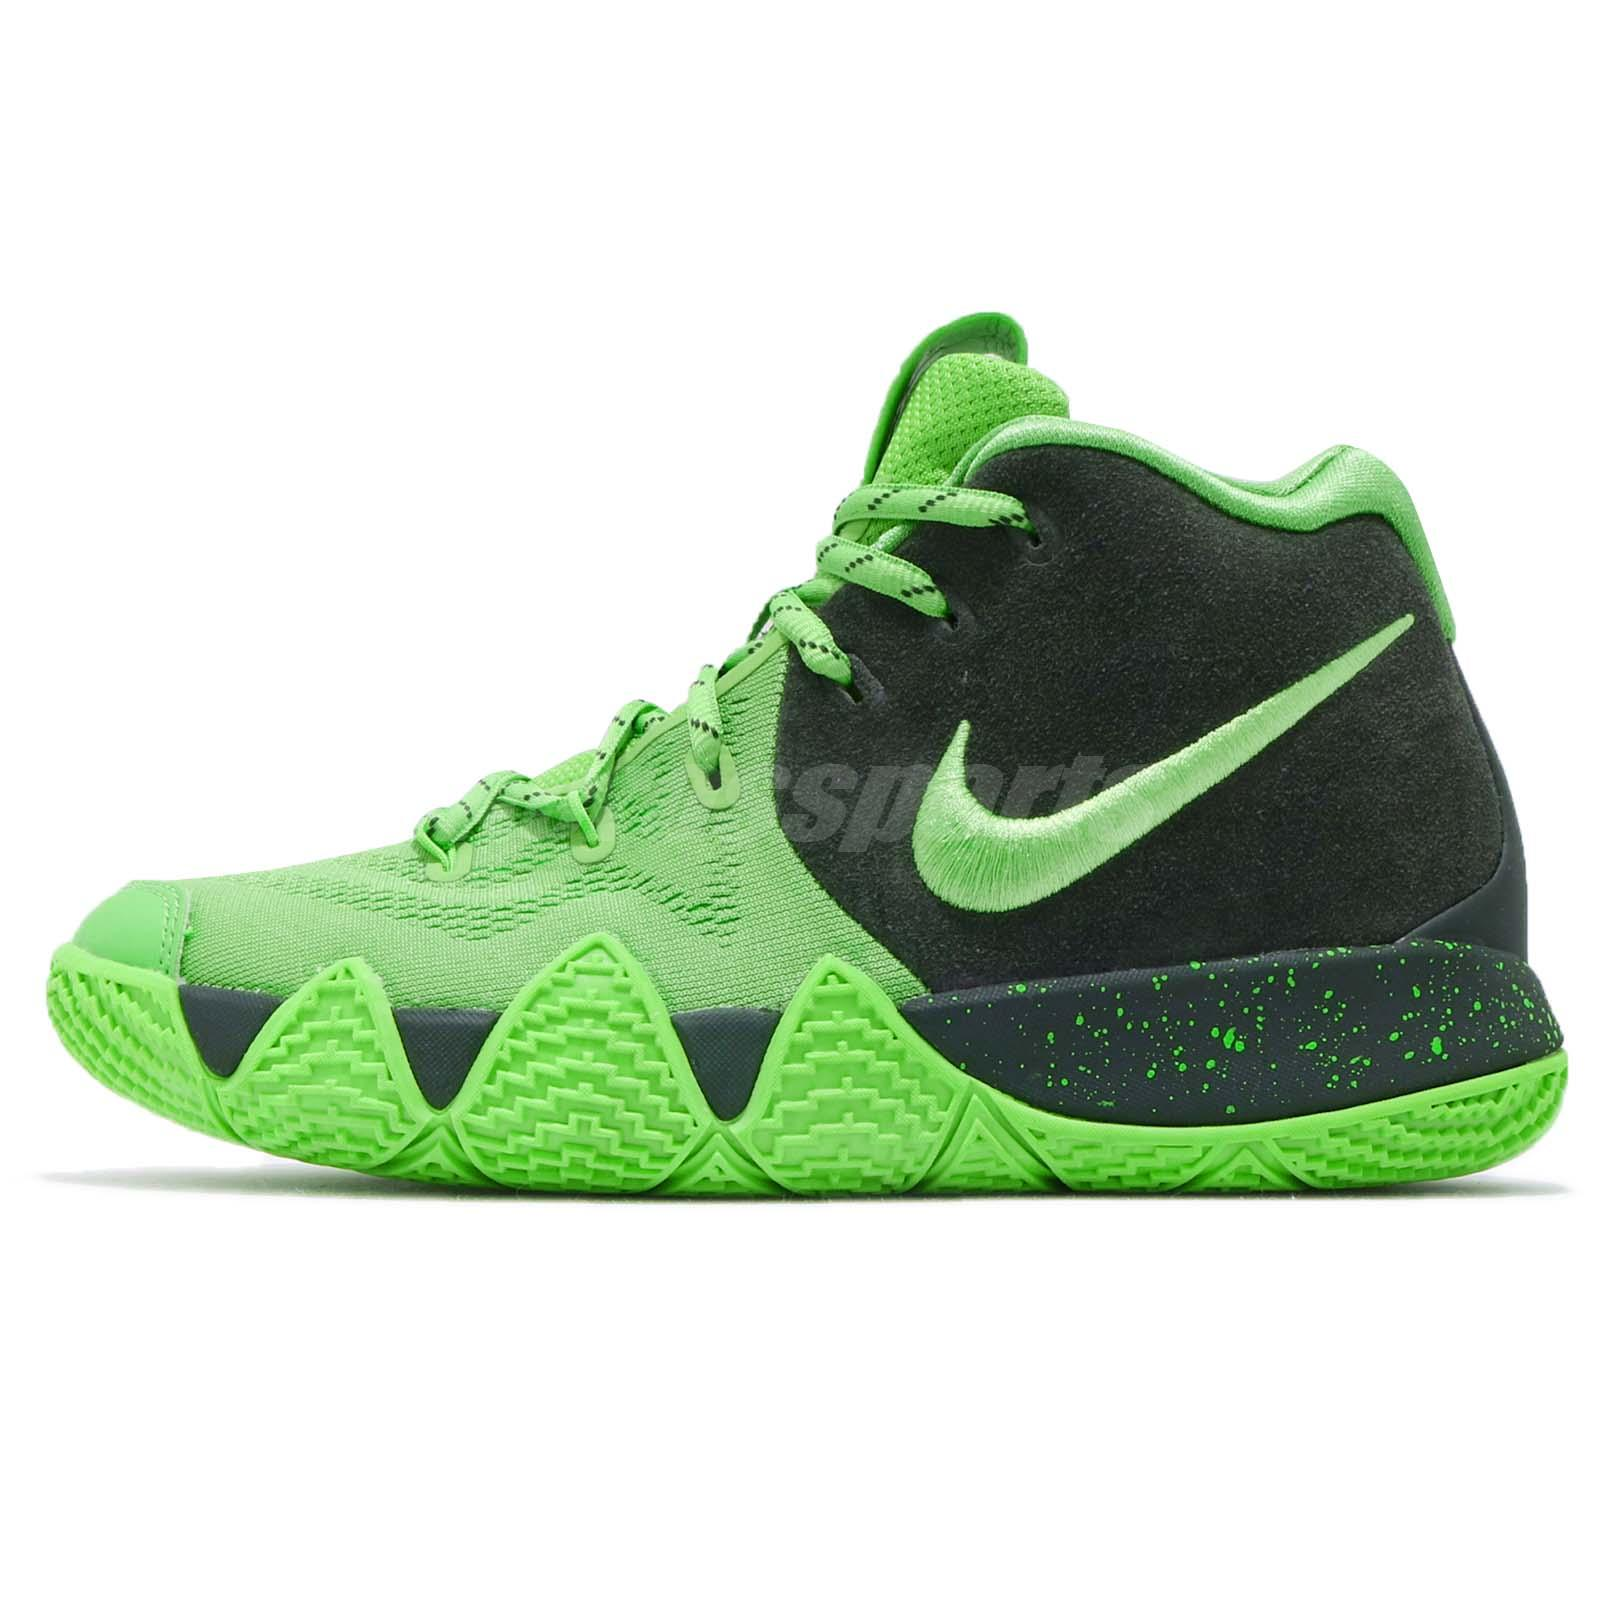 official photos b6f97 2df59 Details about Nike Kyrie 4 GS IV Irving Spinack Green Strike Kid Youth  Women Shoes AA2897-333